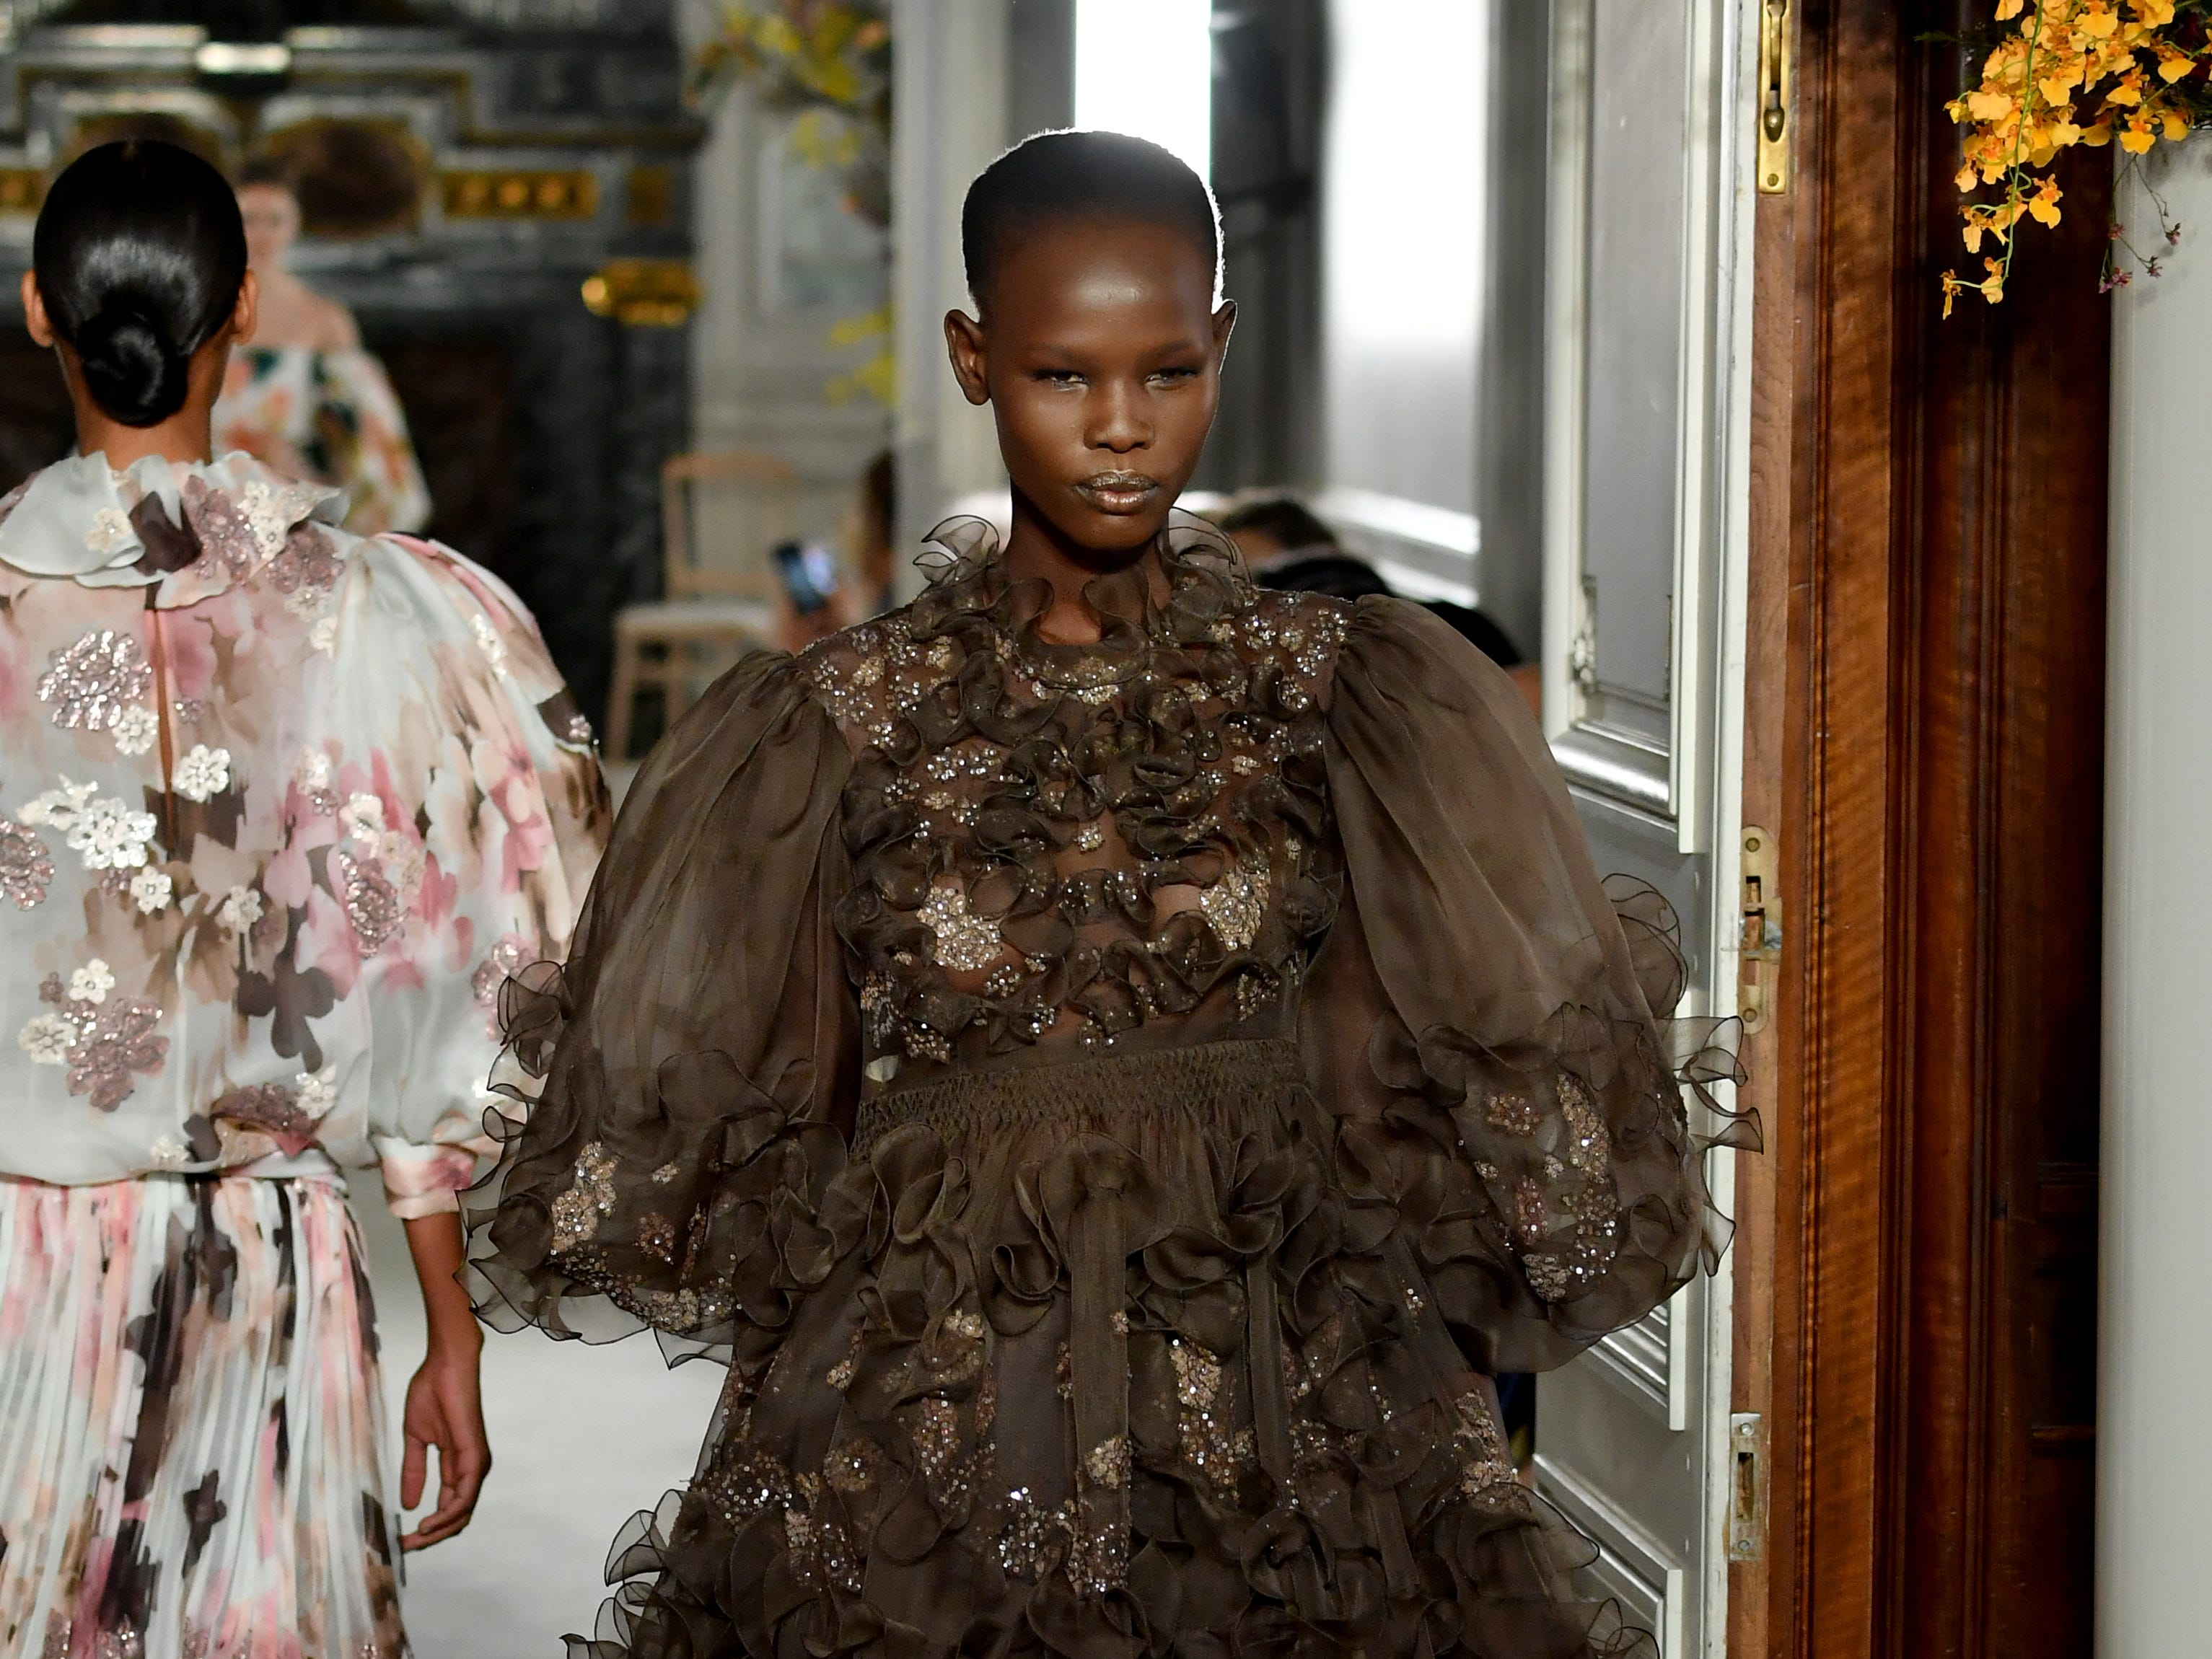 A model walks the runway during the Valentino Spring Summer 2019 show as part of Paris Fashion Week on January 23, 2019 in Paris, France.